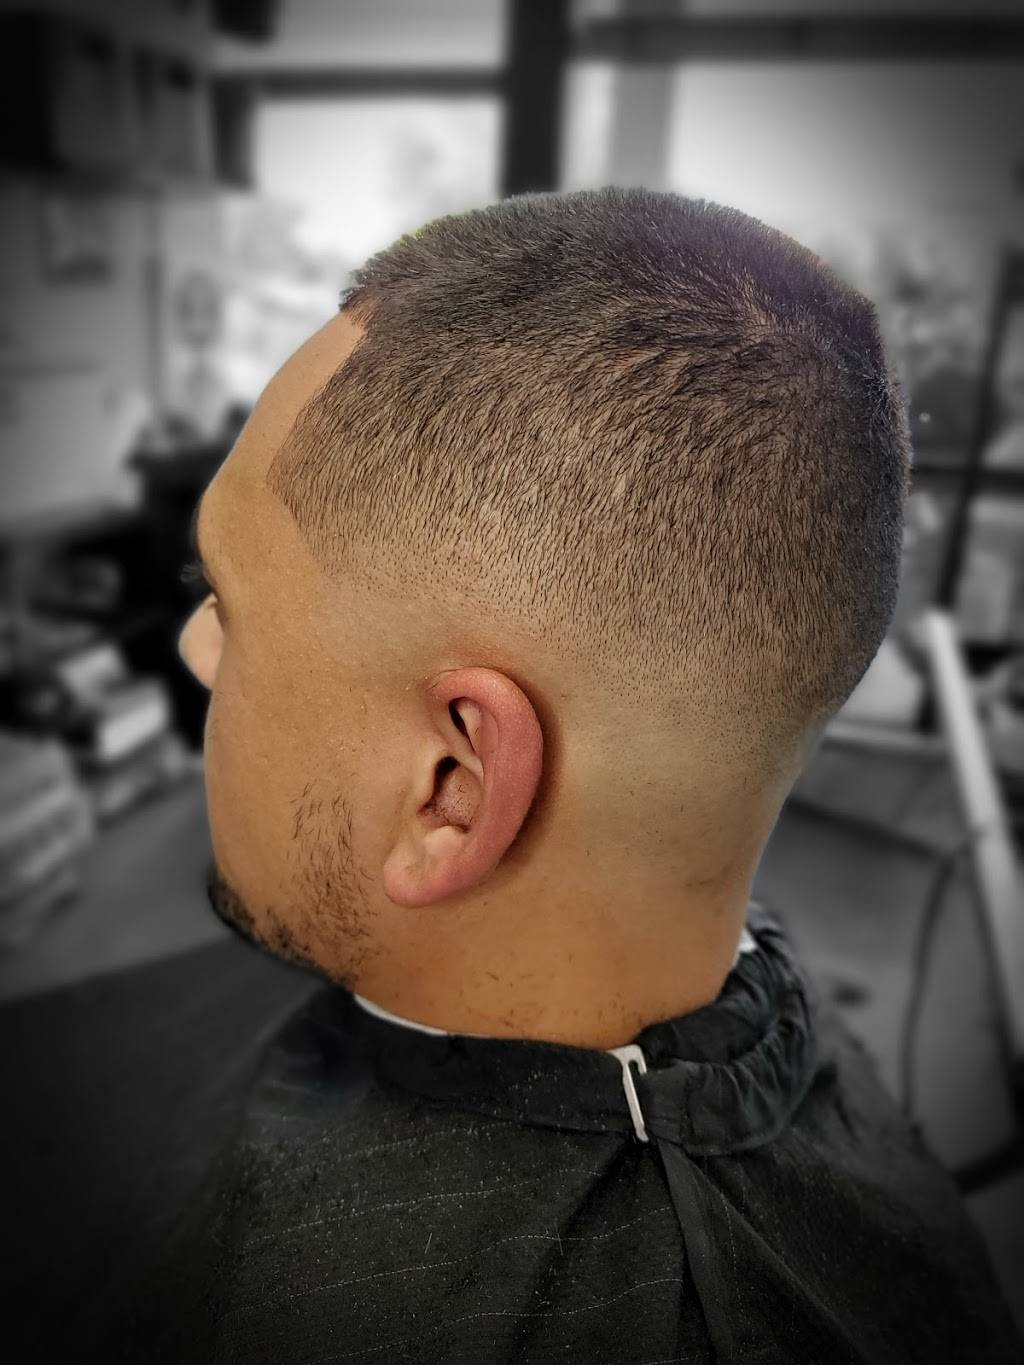 Off The Top Barbershop - hair care  | Photo 3 of 7 | Address: 21455 S Ellsworth Rd suite #43, Queen Creek, AZ 85142, USA | Phone: (480) 616-5683